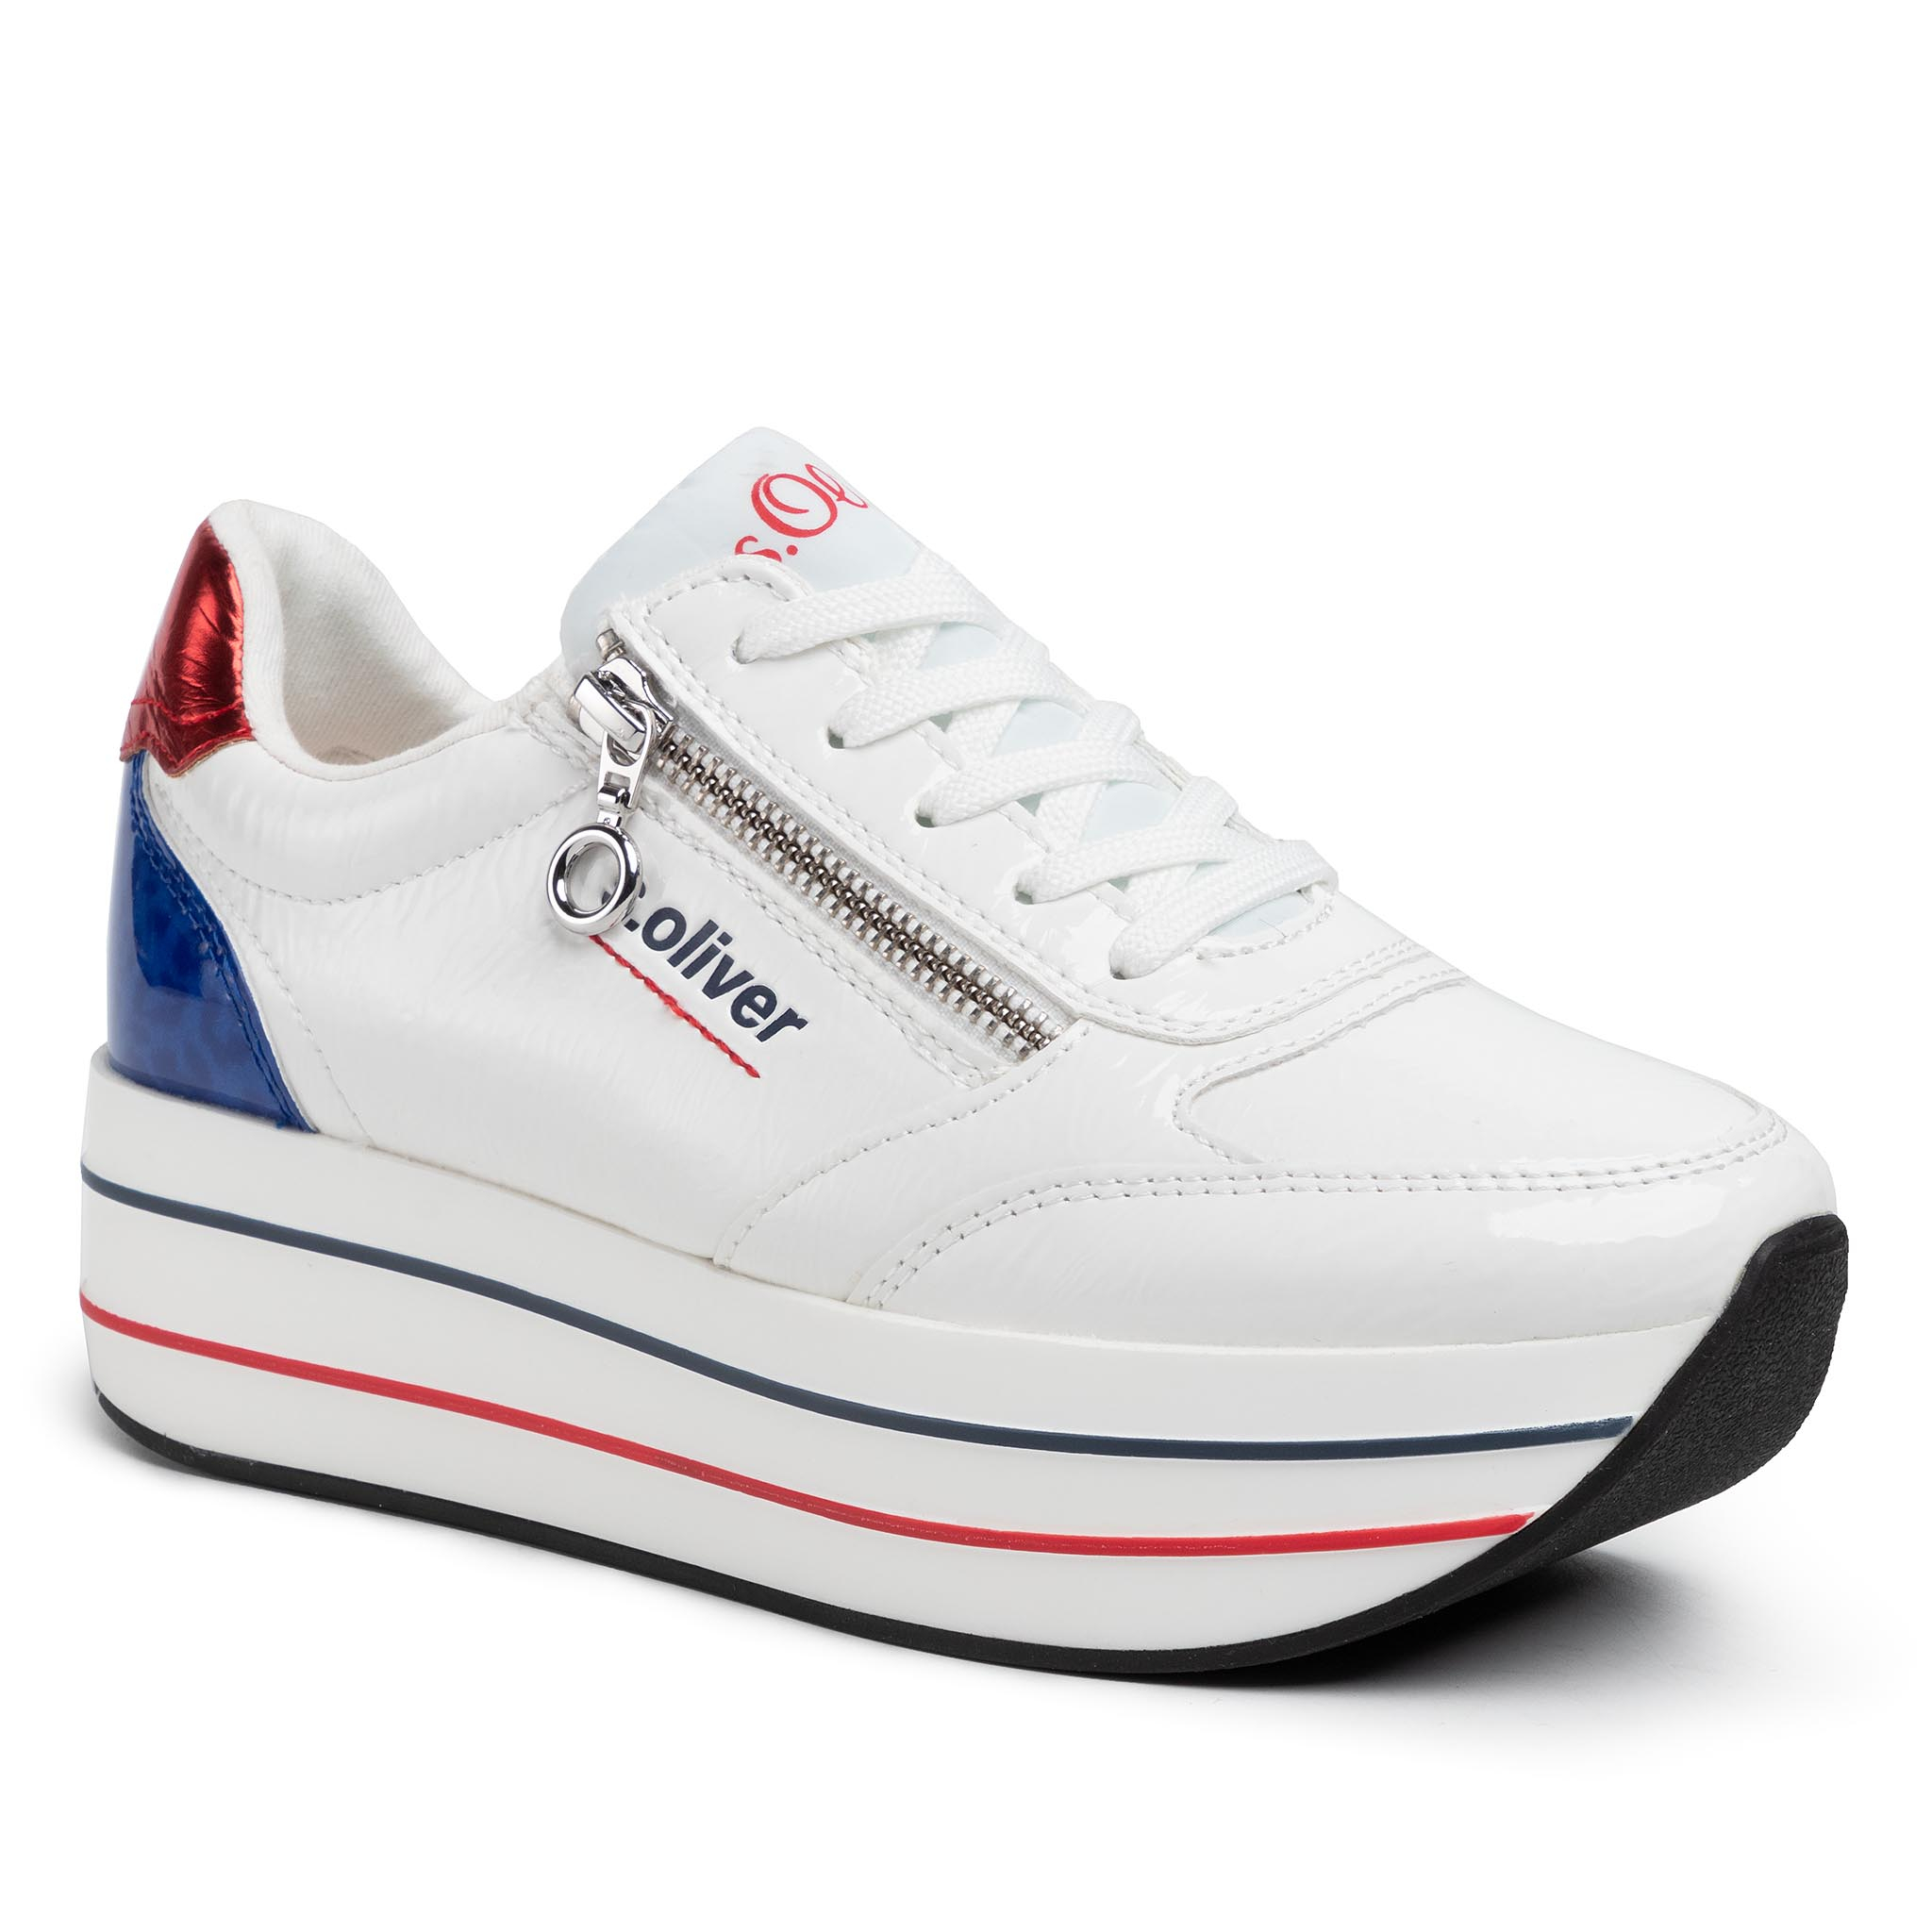 Image of Sneakers S.OLIVER - 5-23641-34 White Comb. 110